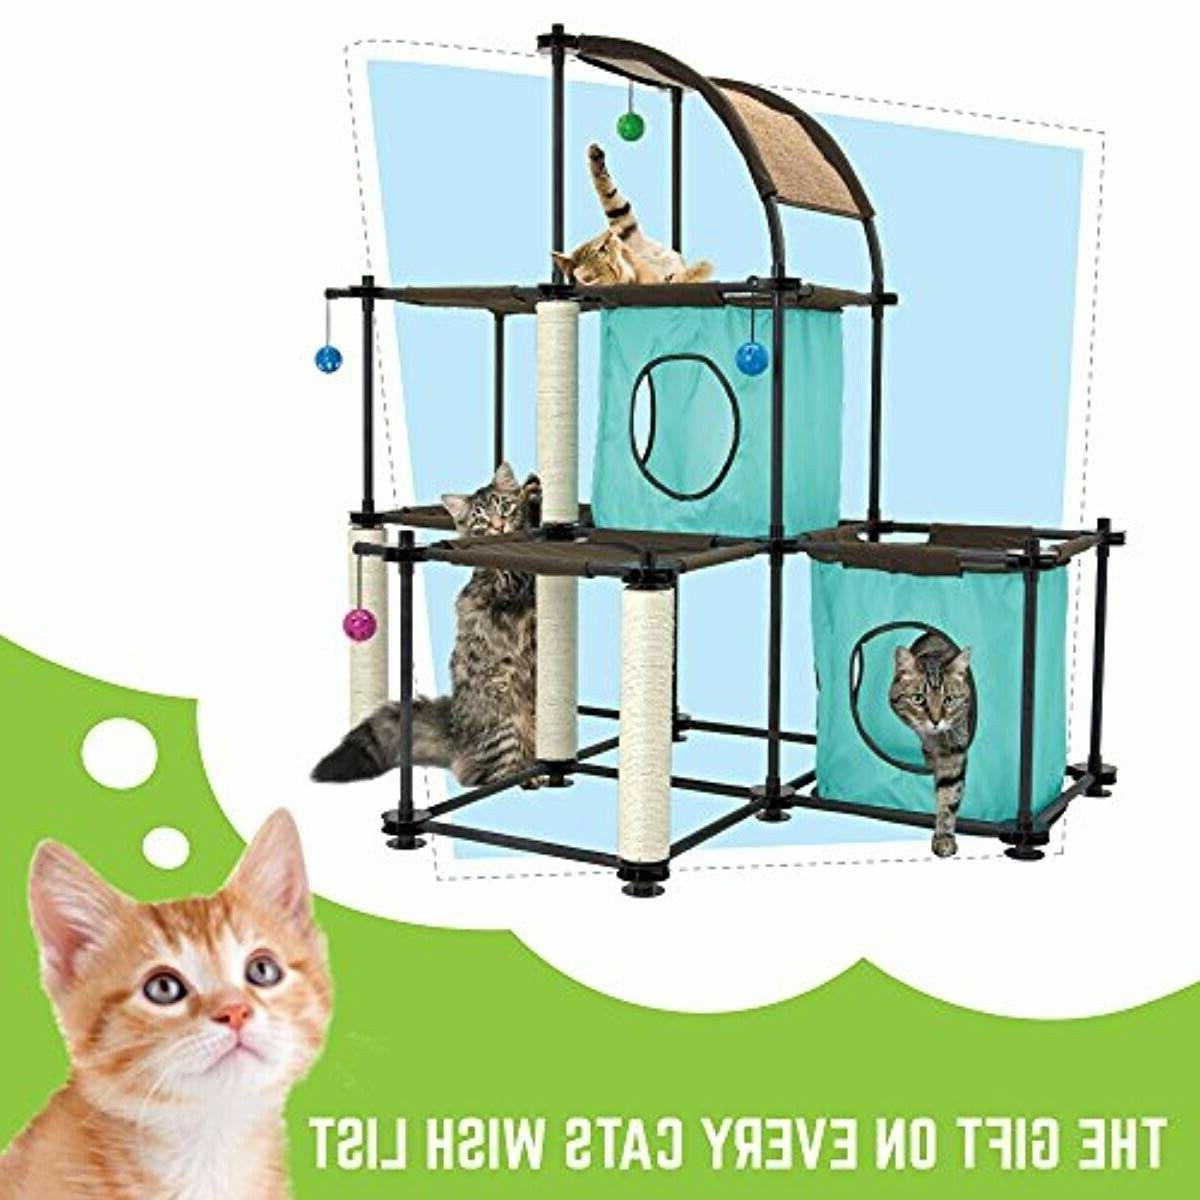 Cat Kitty Claw Mega Furniture Toy Bed Scratching Post House